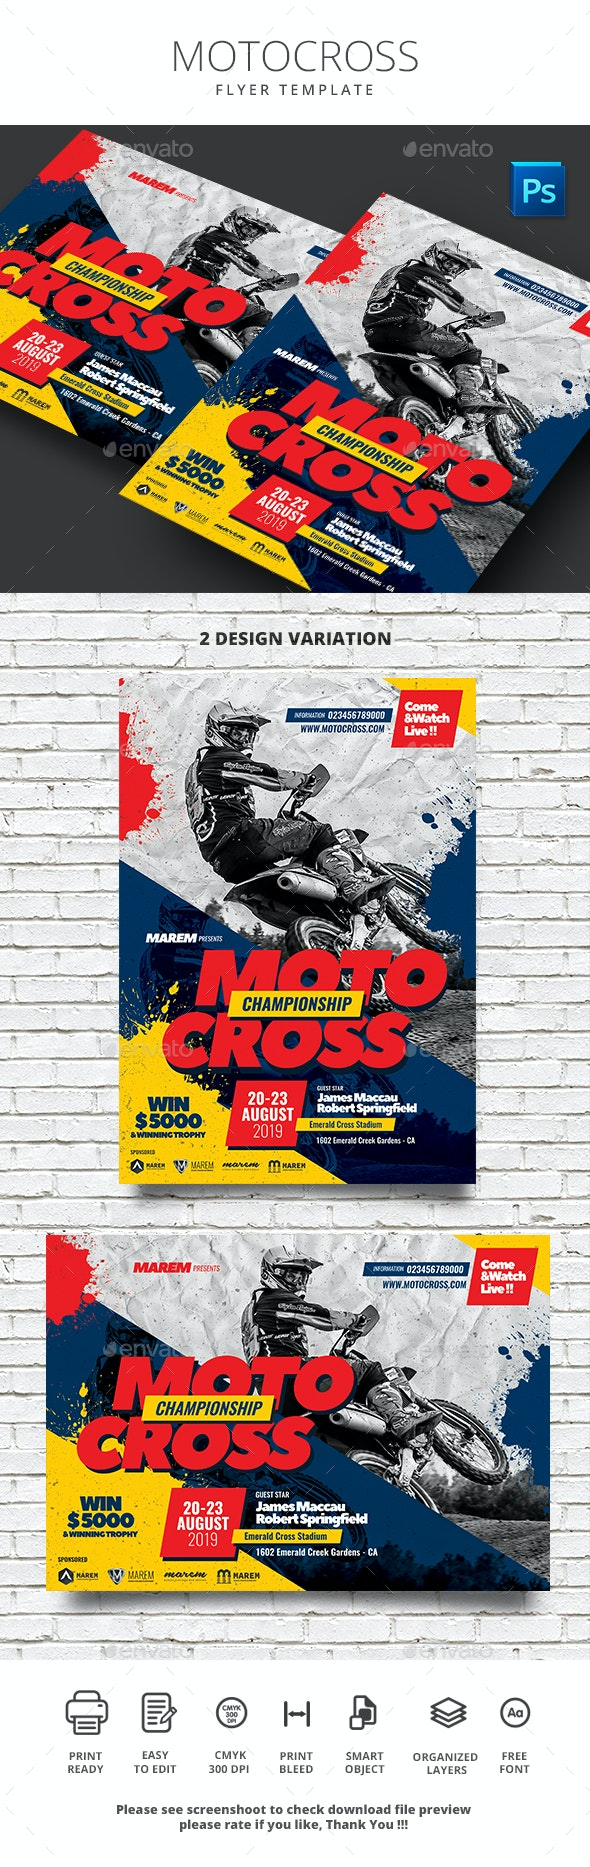 Motocross Flyer - Flyers Print Templates